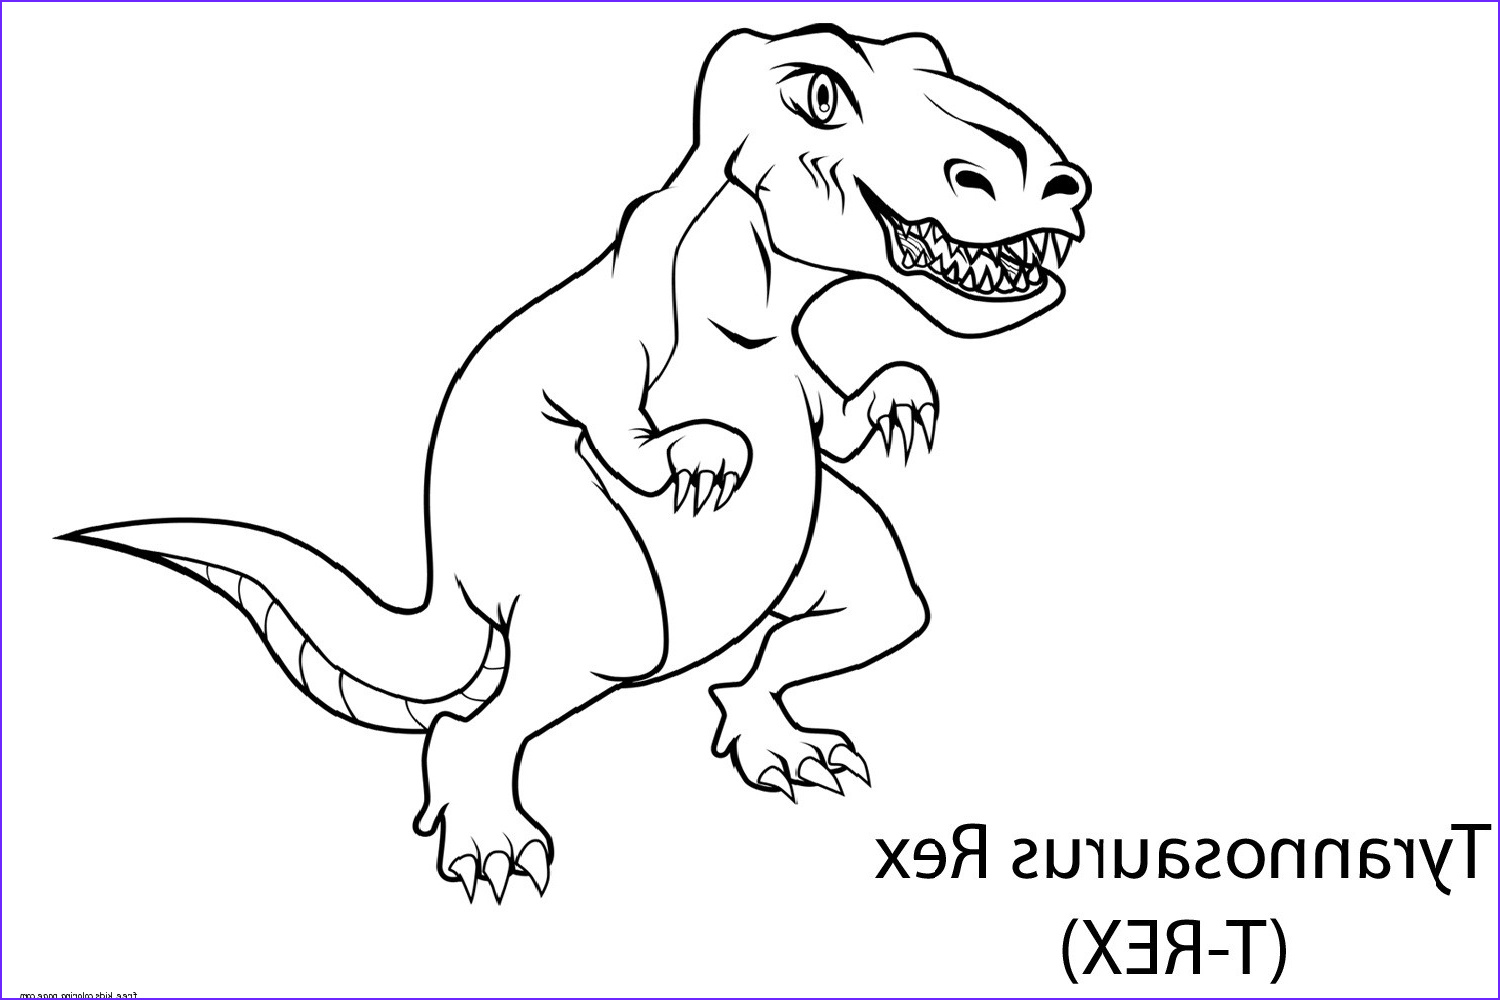 Dinosaur Coloring Pages For Toddlers Luxury Photos Dinosaur Tyrannosaurus Rex Coloring Book Pages For